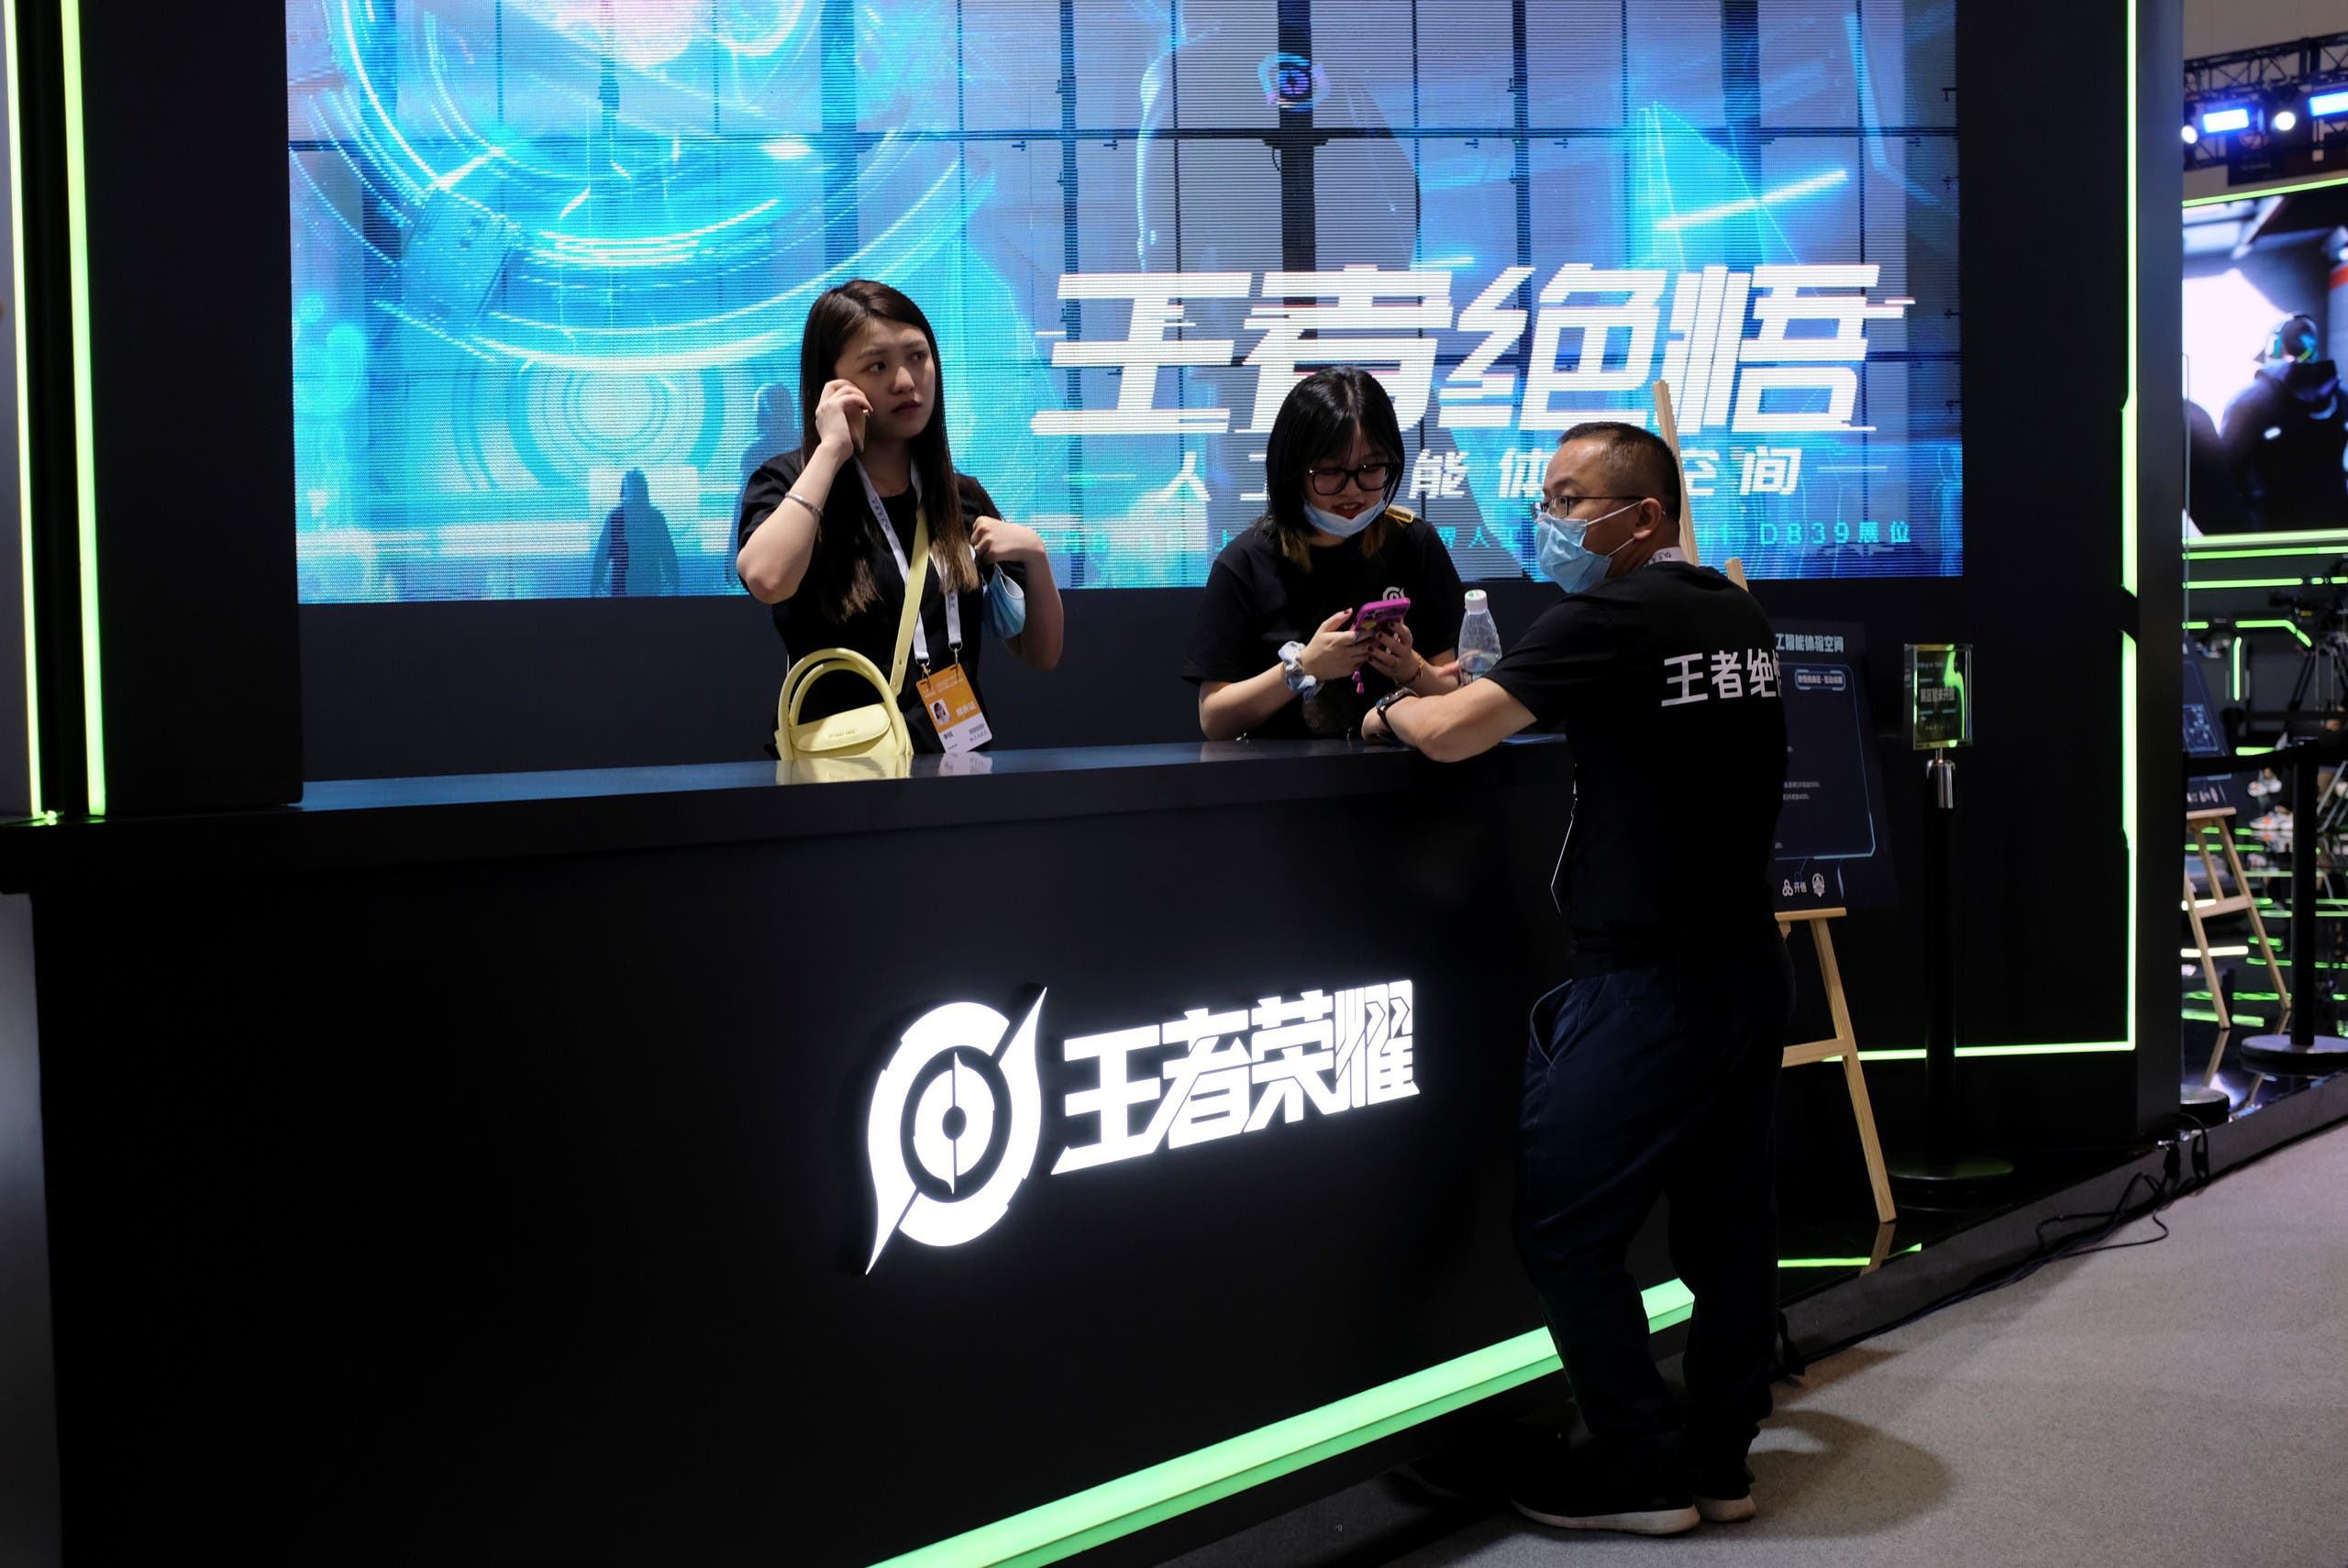 Staff members stand at the booth of Honor of Kings, a Tencent Games game, during the World Artificial Intelligence Conference (WAIC) in Shanghai, China July 8, 2021. (Reuters)